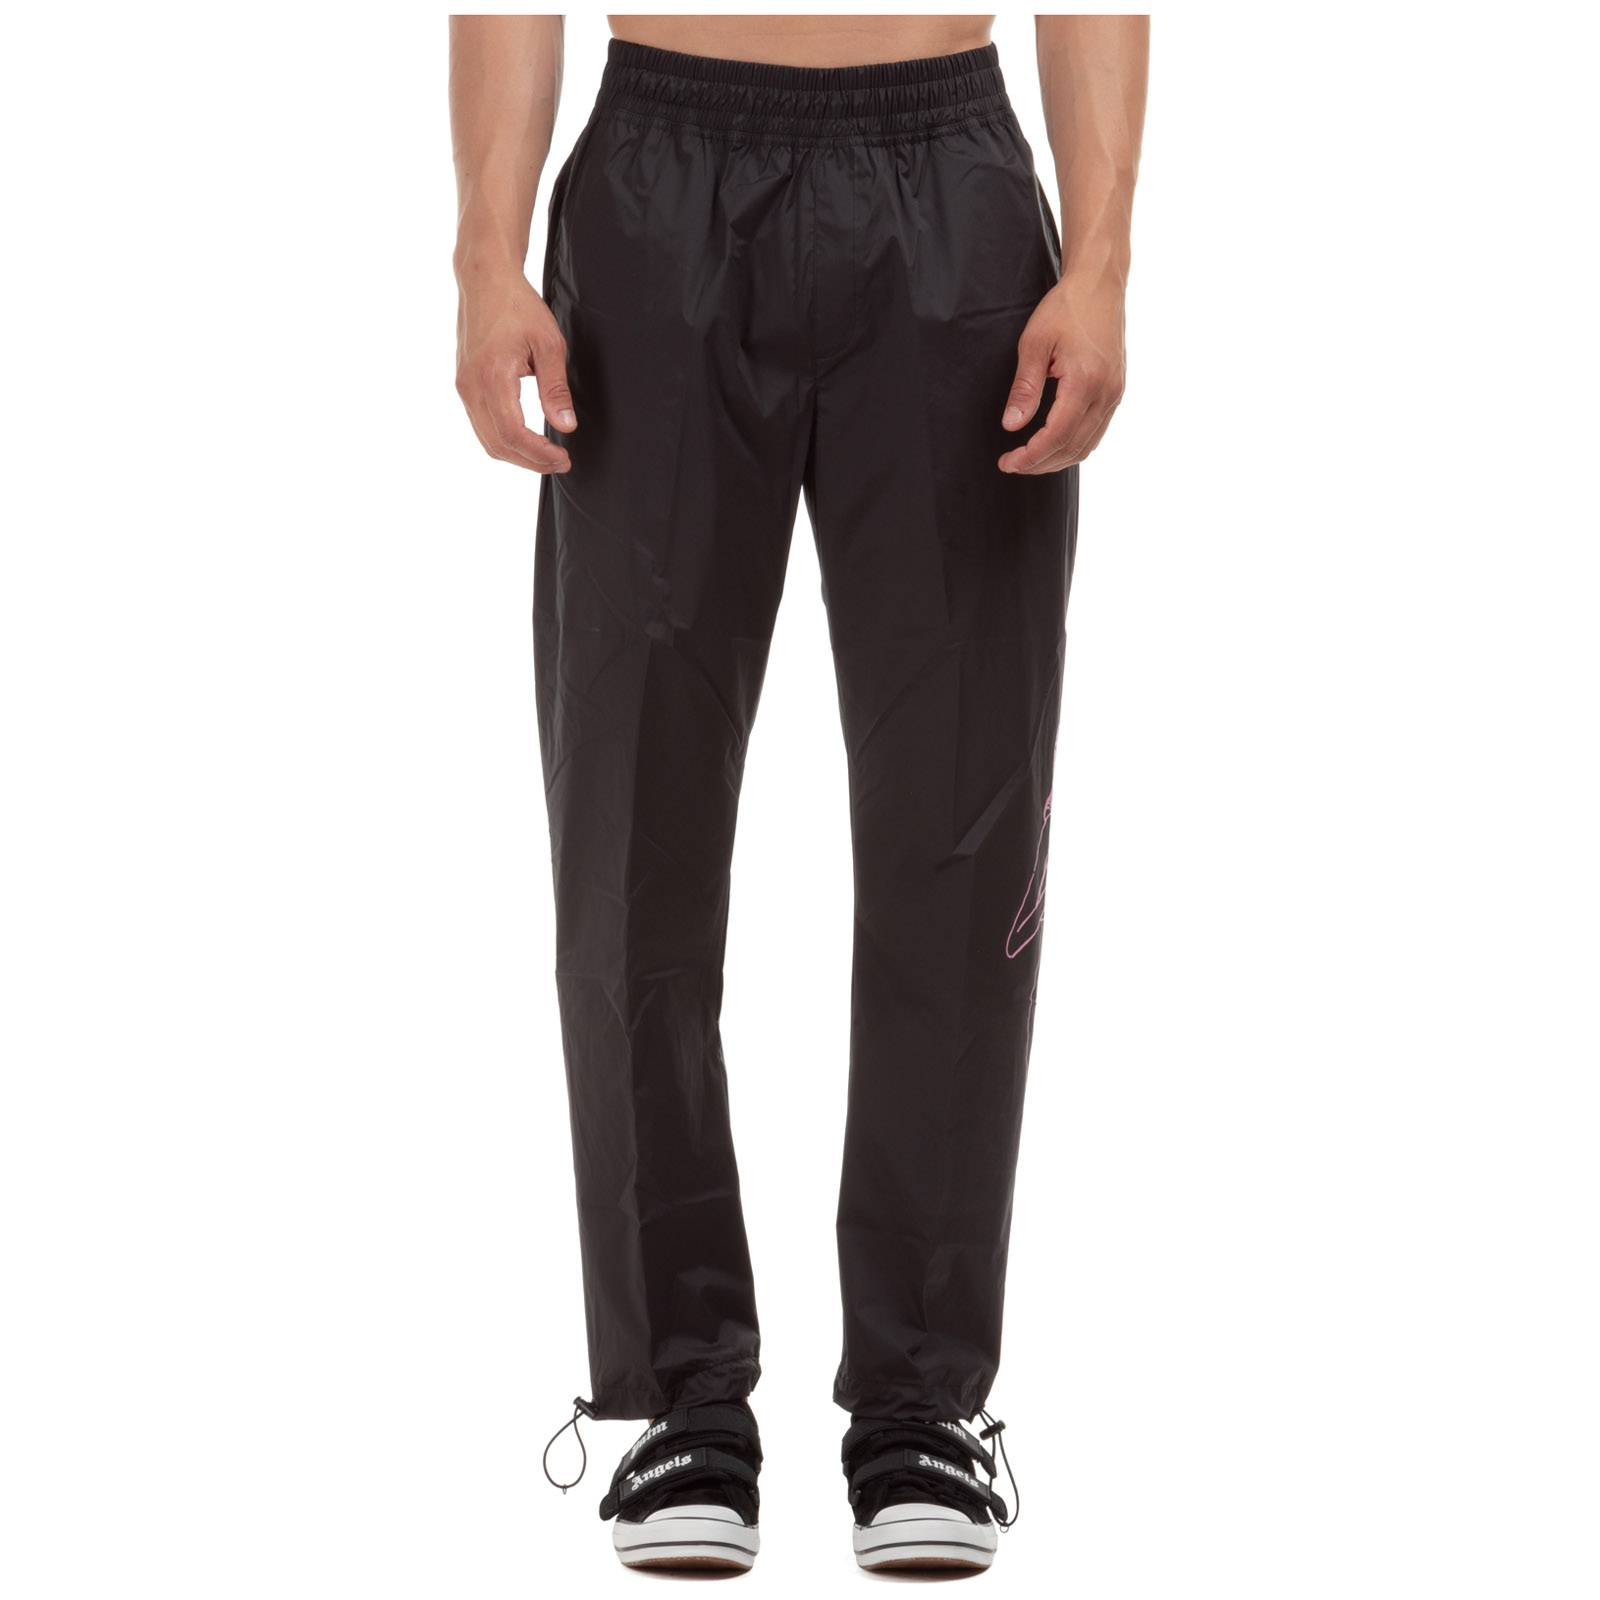 Palm Men's sport tracksuit trousers exotic woman aftersports  - Black - Size: Large